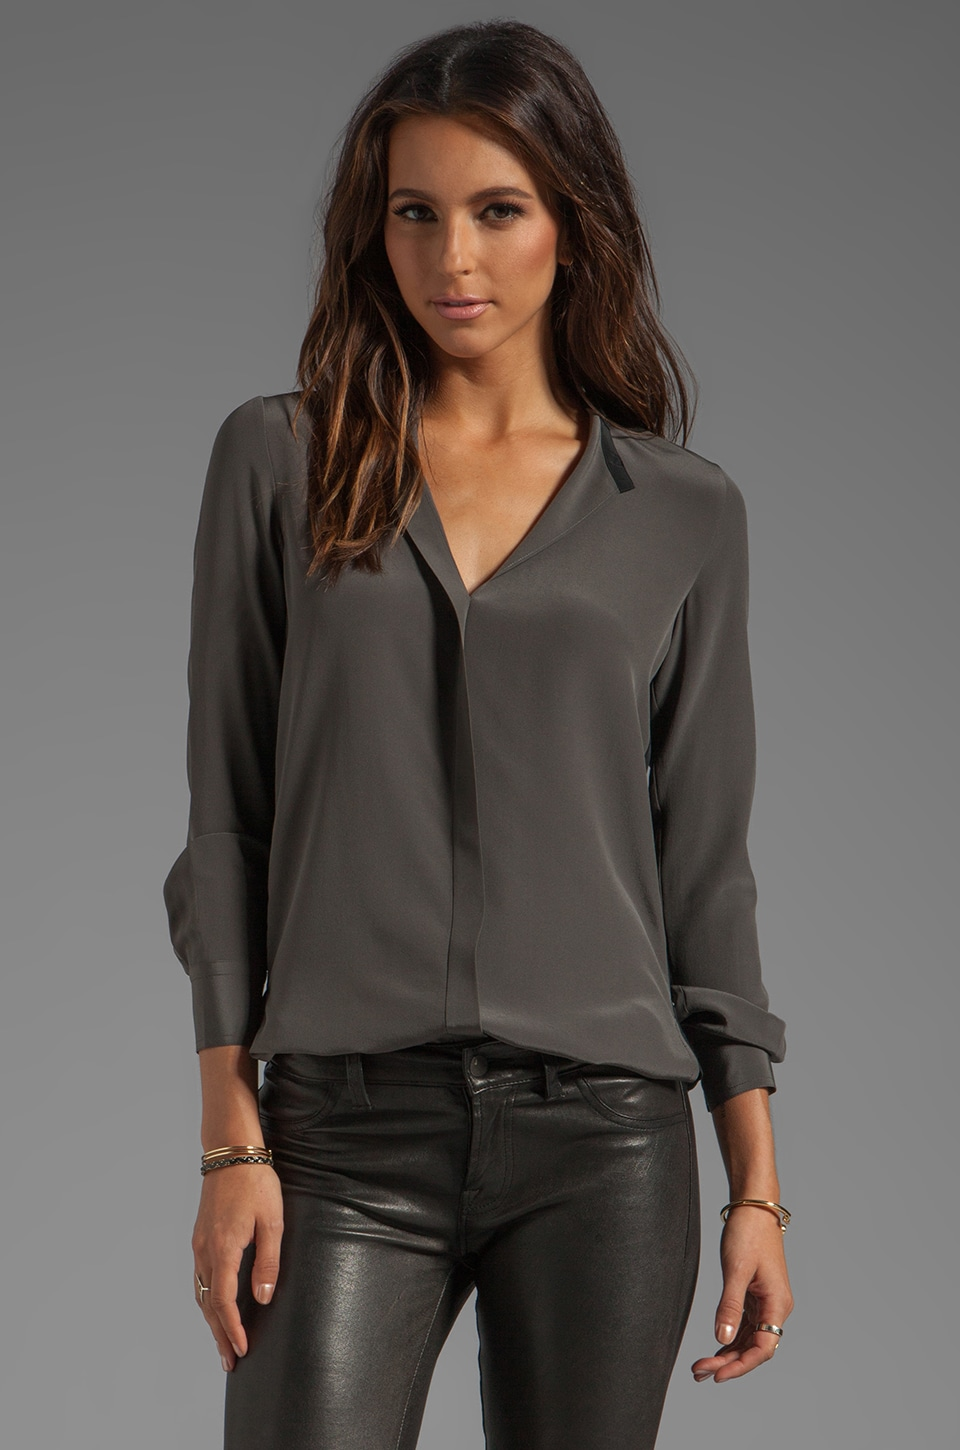 Vince Colorblock Blouse in Fatigue/Black